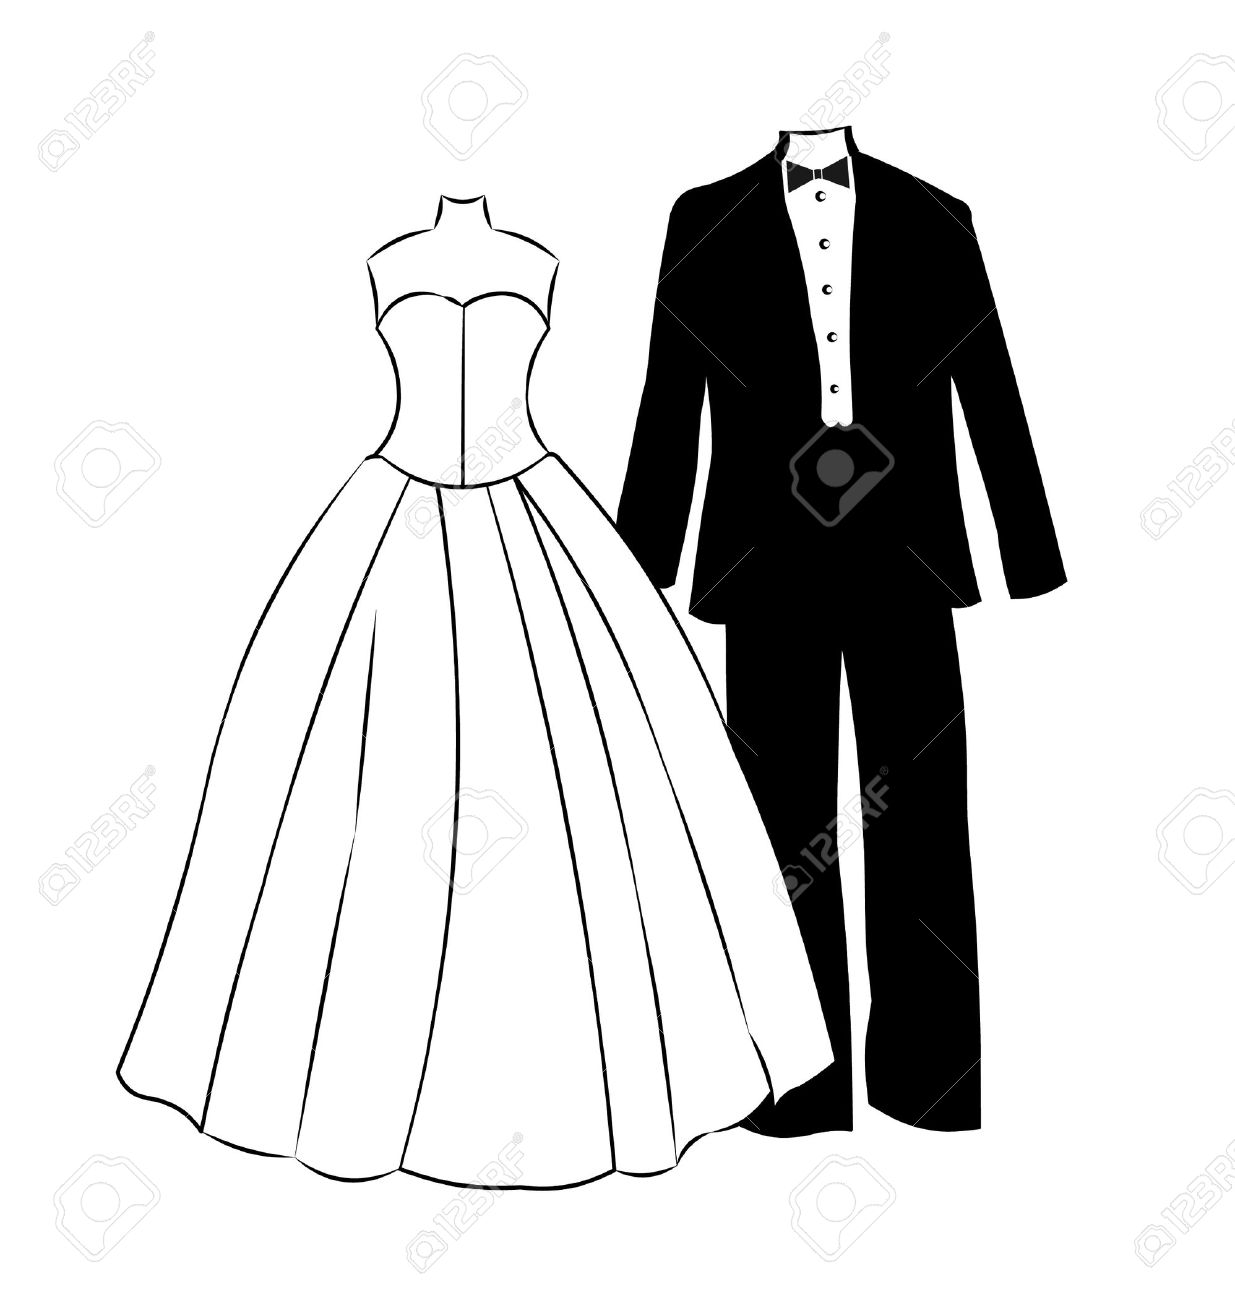 Formal silhouette at getdrawings. Bride clipart evening gown